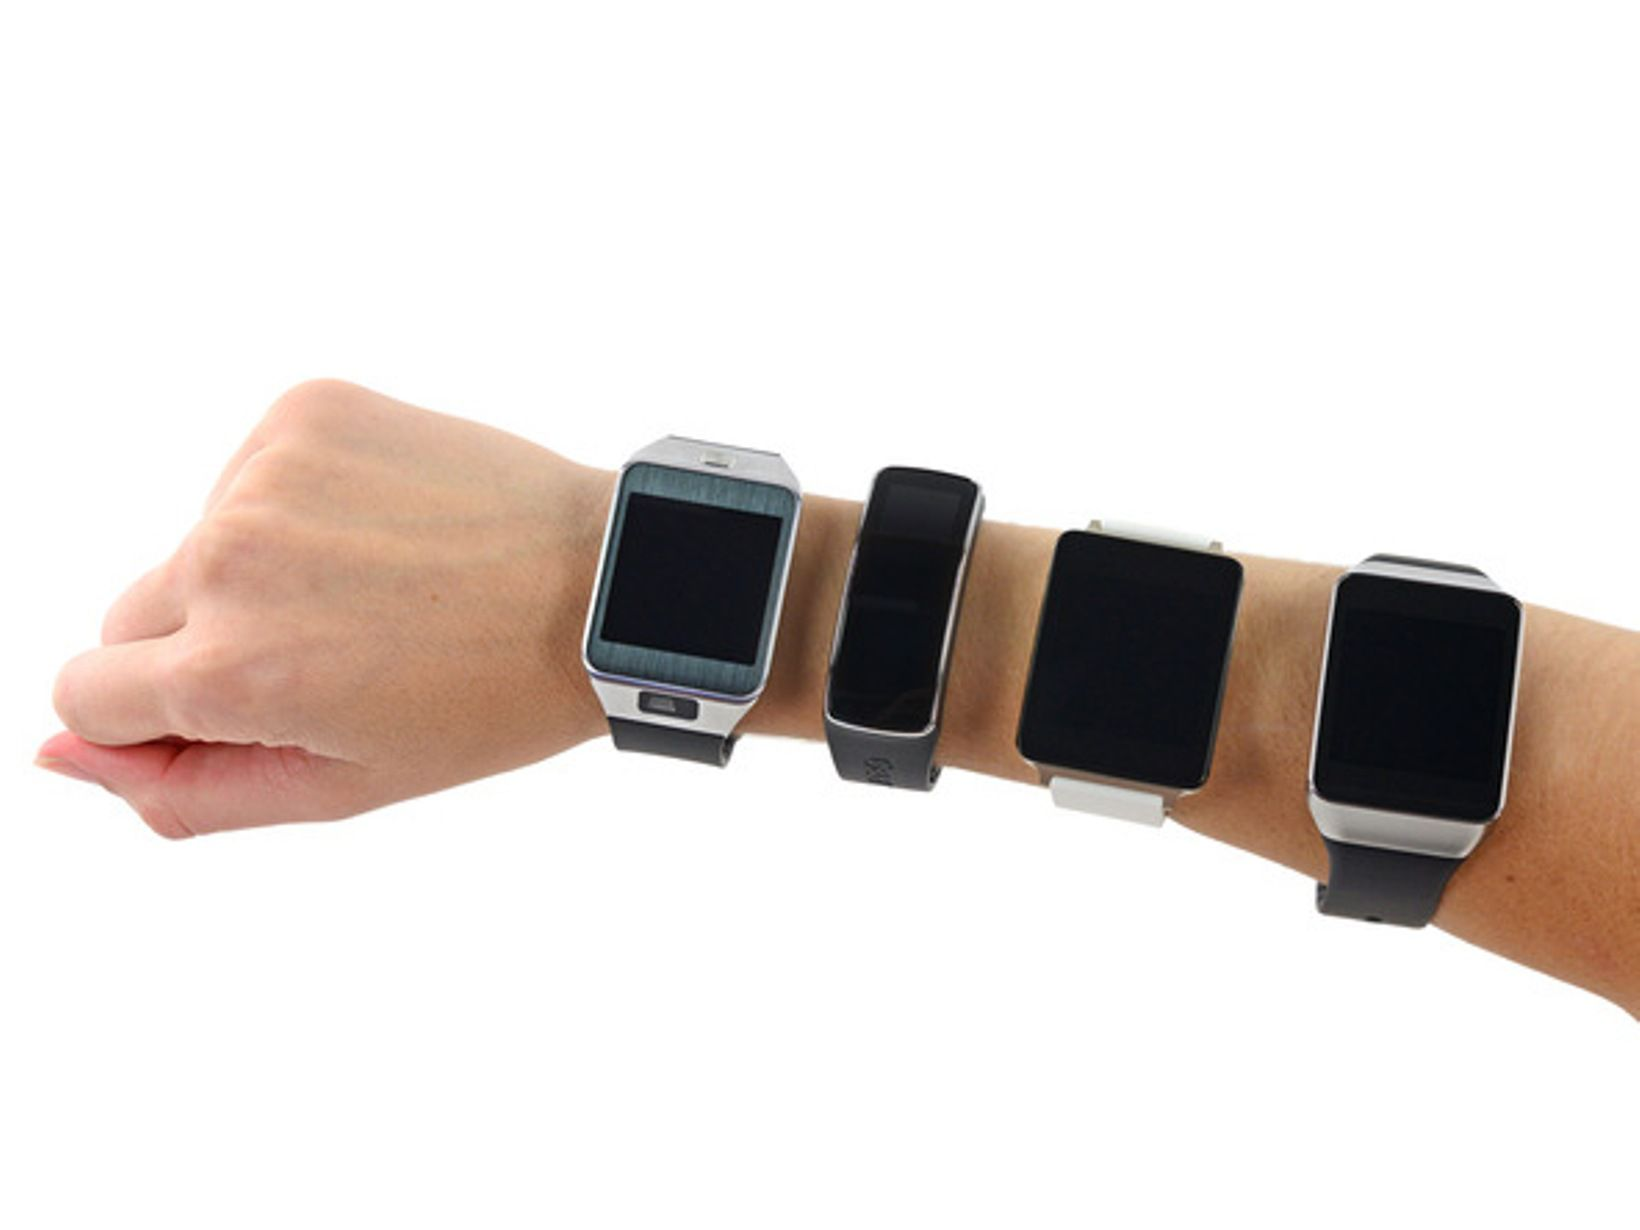 Multiple Smartwatches on one arm